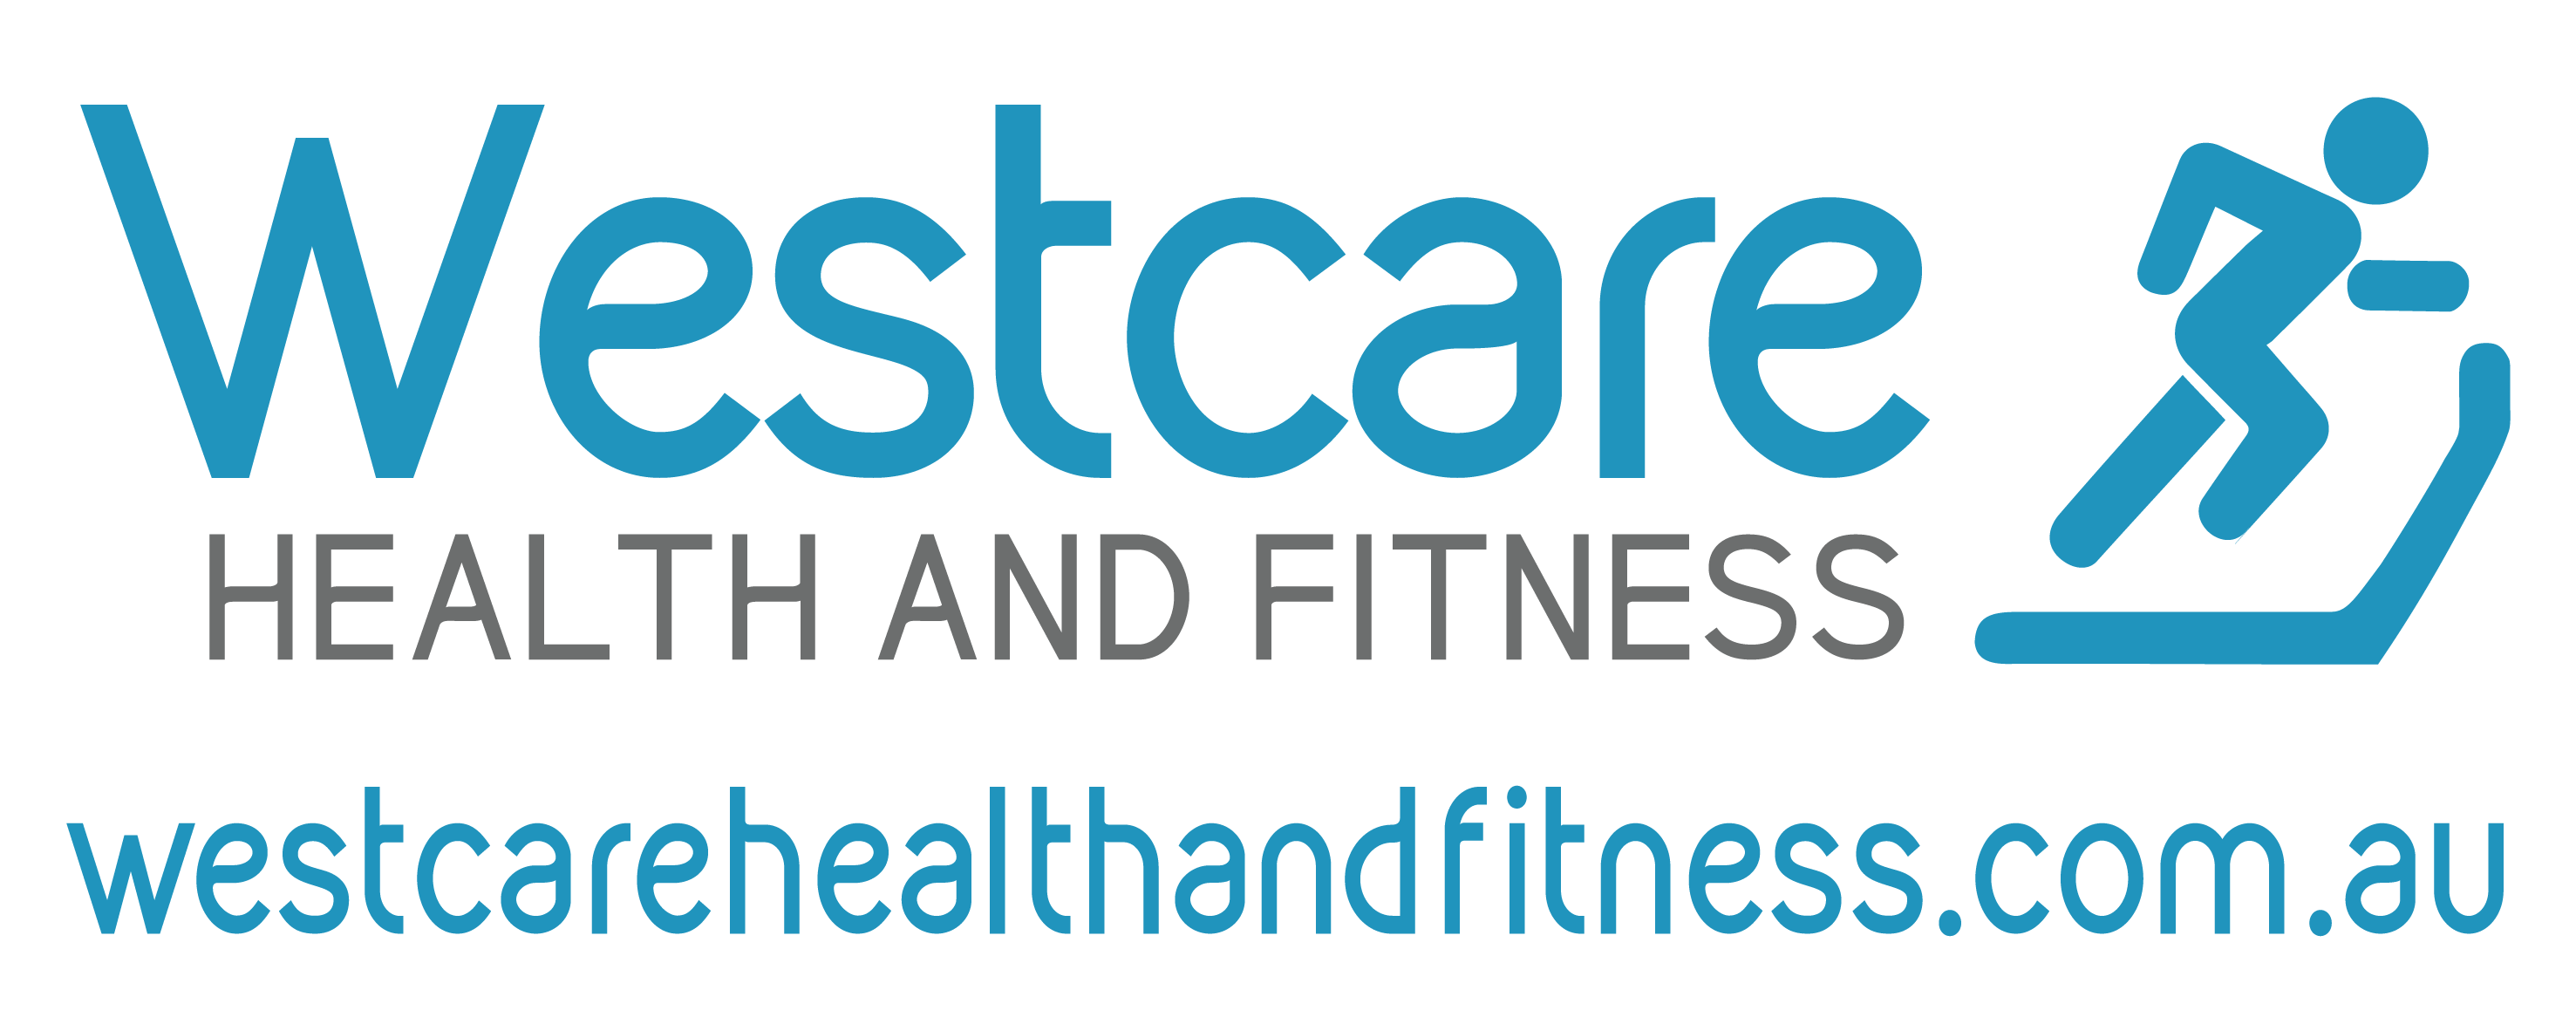 Westcare Health and Fitness